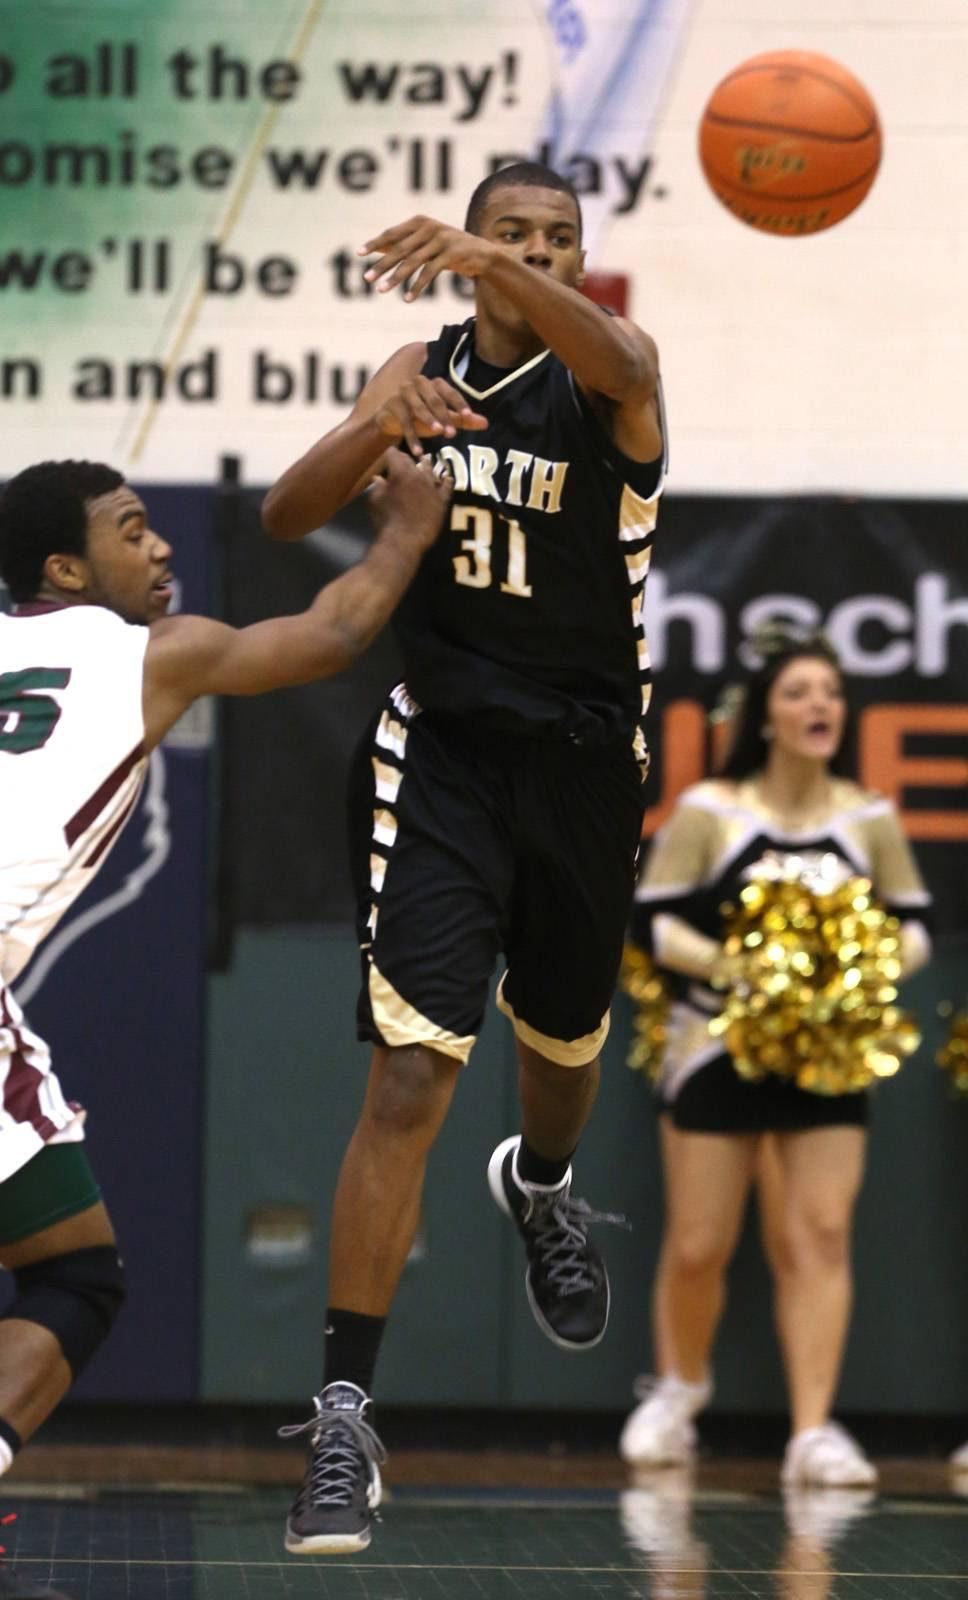 Glenbard North played Morton Friday, March 14, 2014, for a boys basketball sectional final game at Bartlett High School.